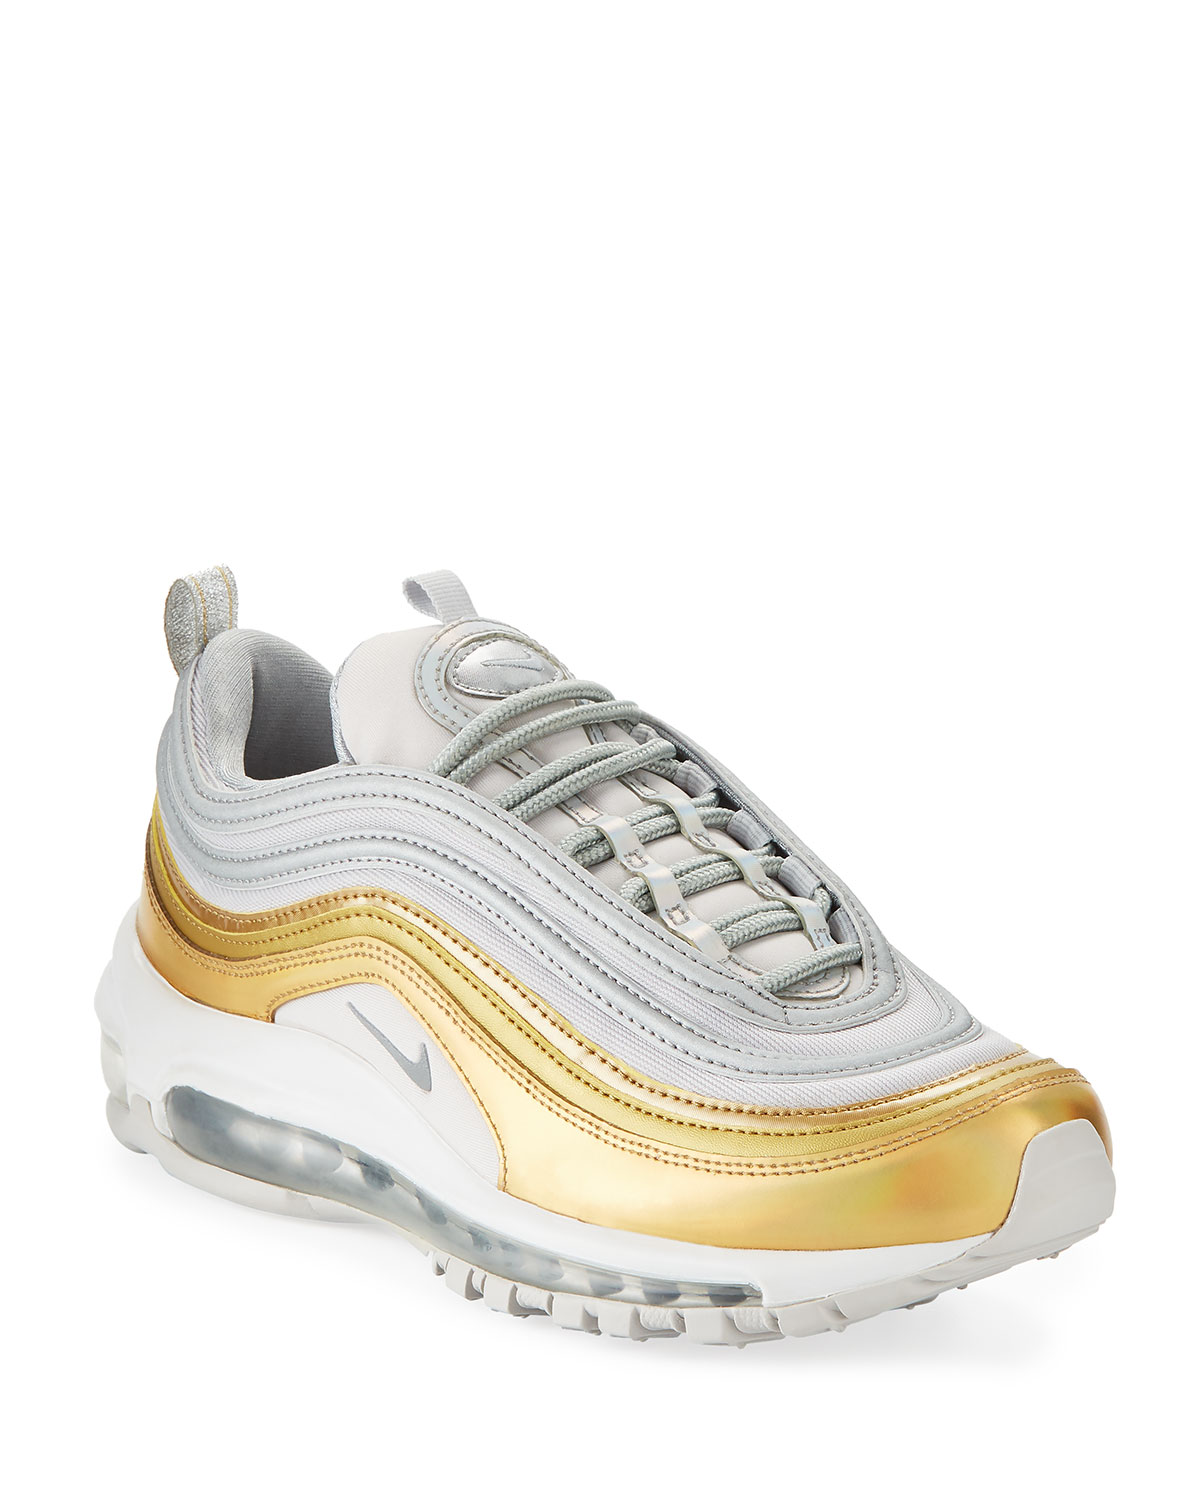 competitive price c4fcf b853a Nike Air Max 97 Special Edition Sneakers